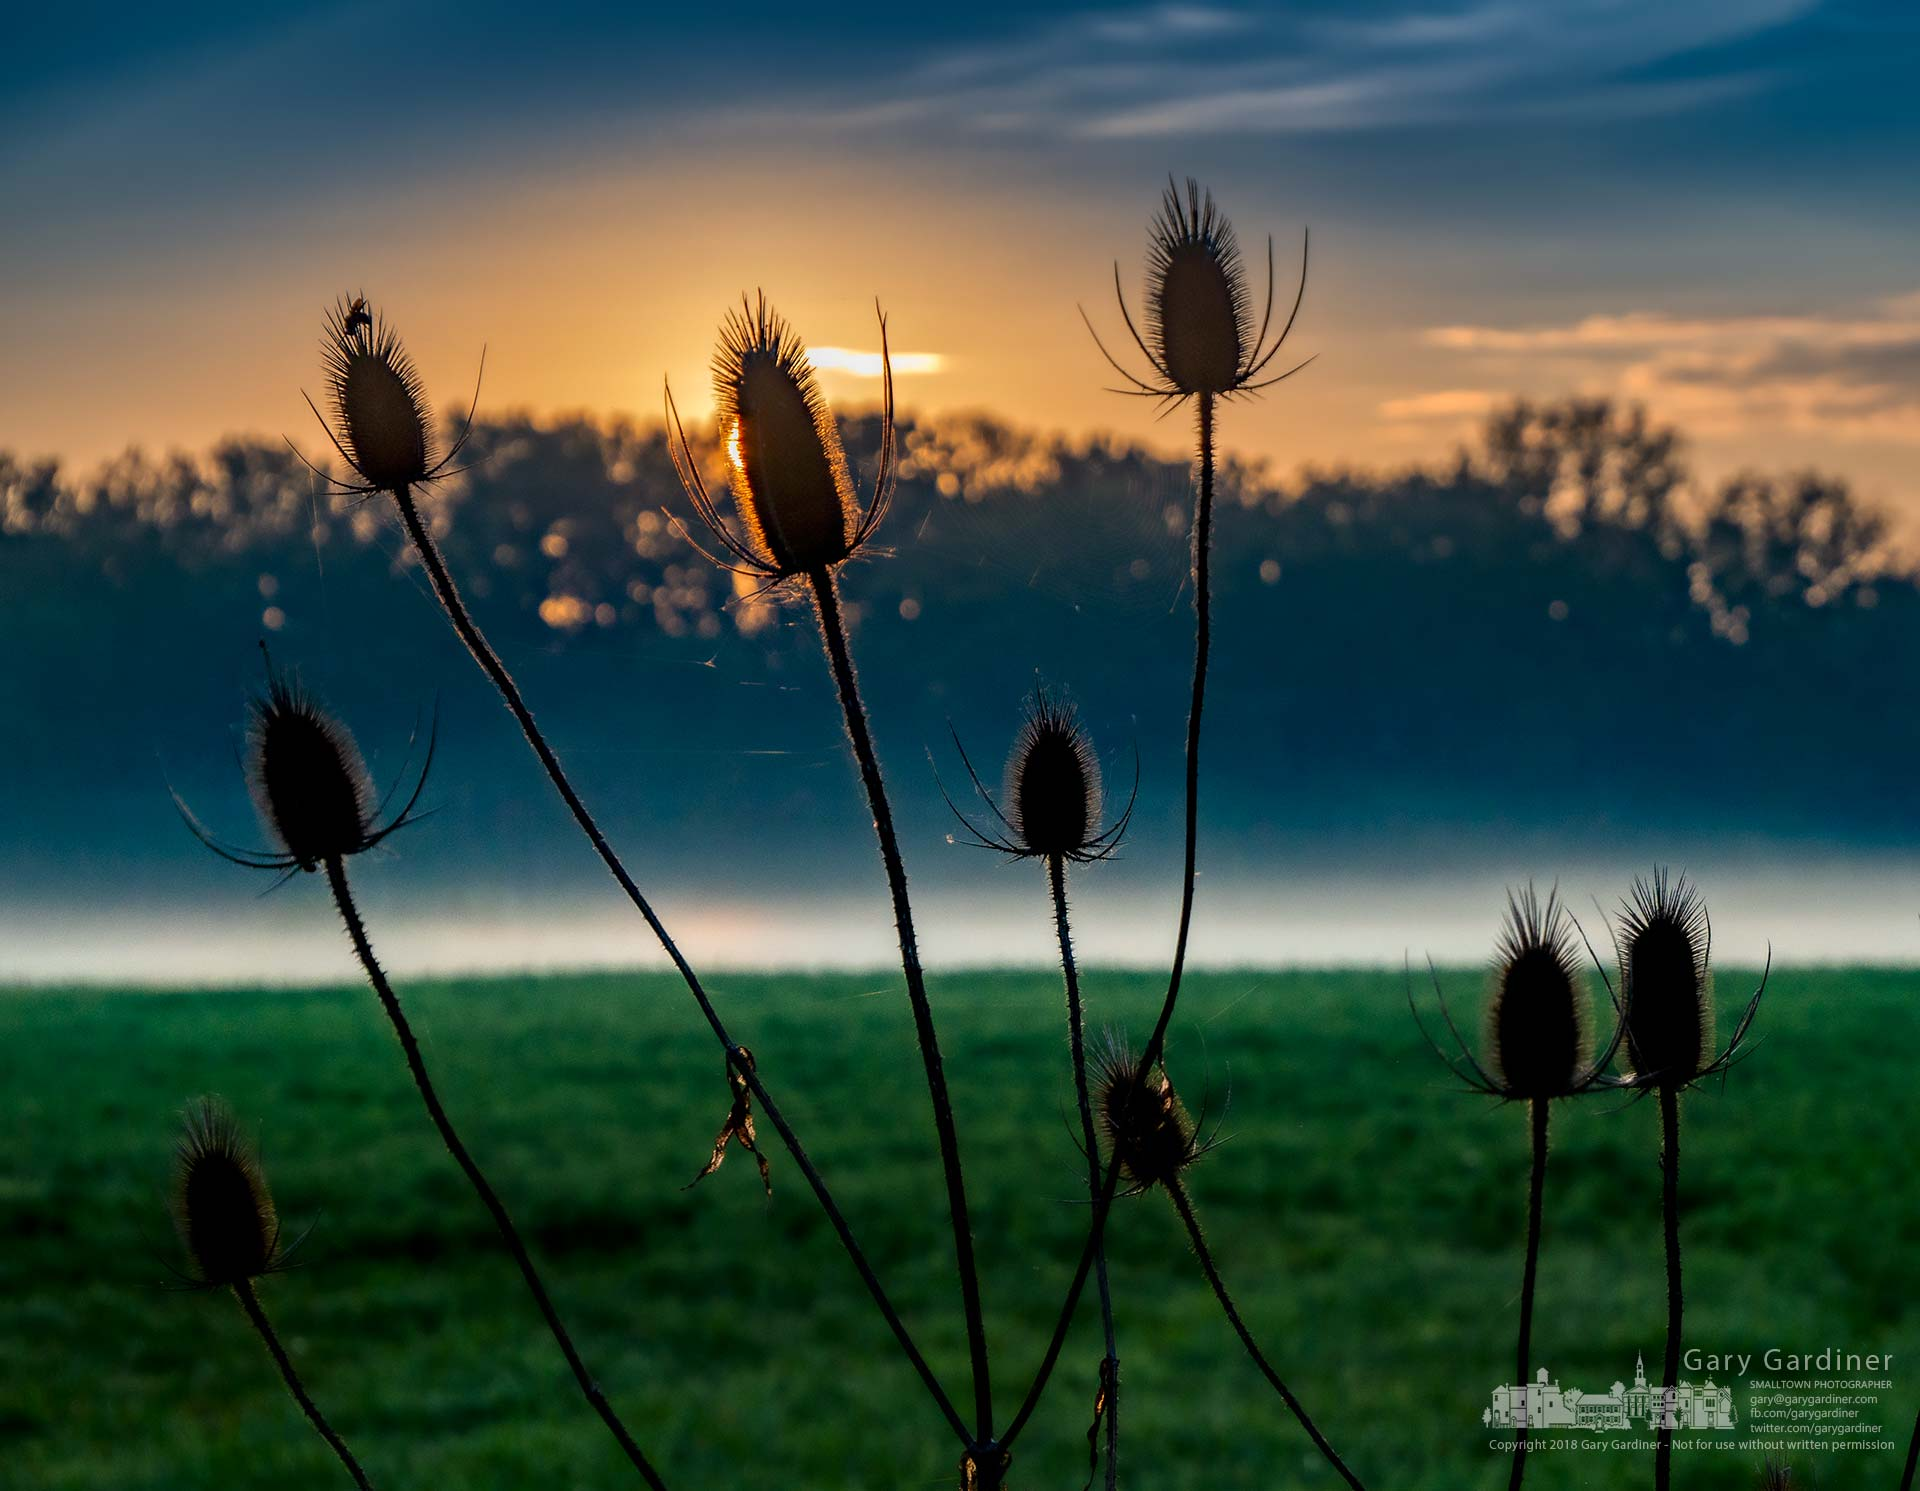 Thistles connected with spider webs silhouette against the morning sun breaking over trees along the bikepath beside Alum Creek as fog over the hayfield begins to rise. My Final Photo for Oct. 8, 2018.